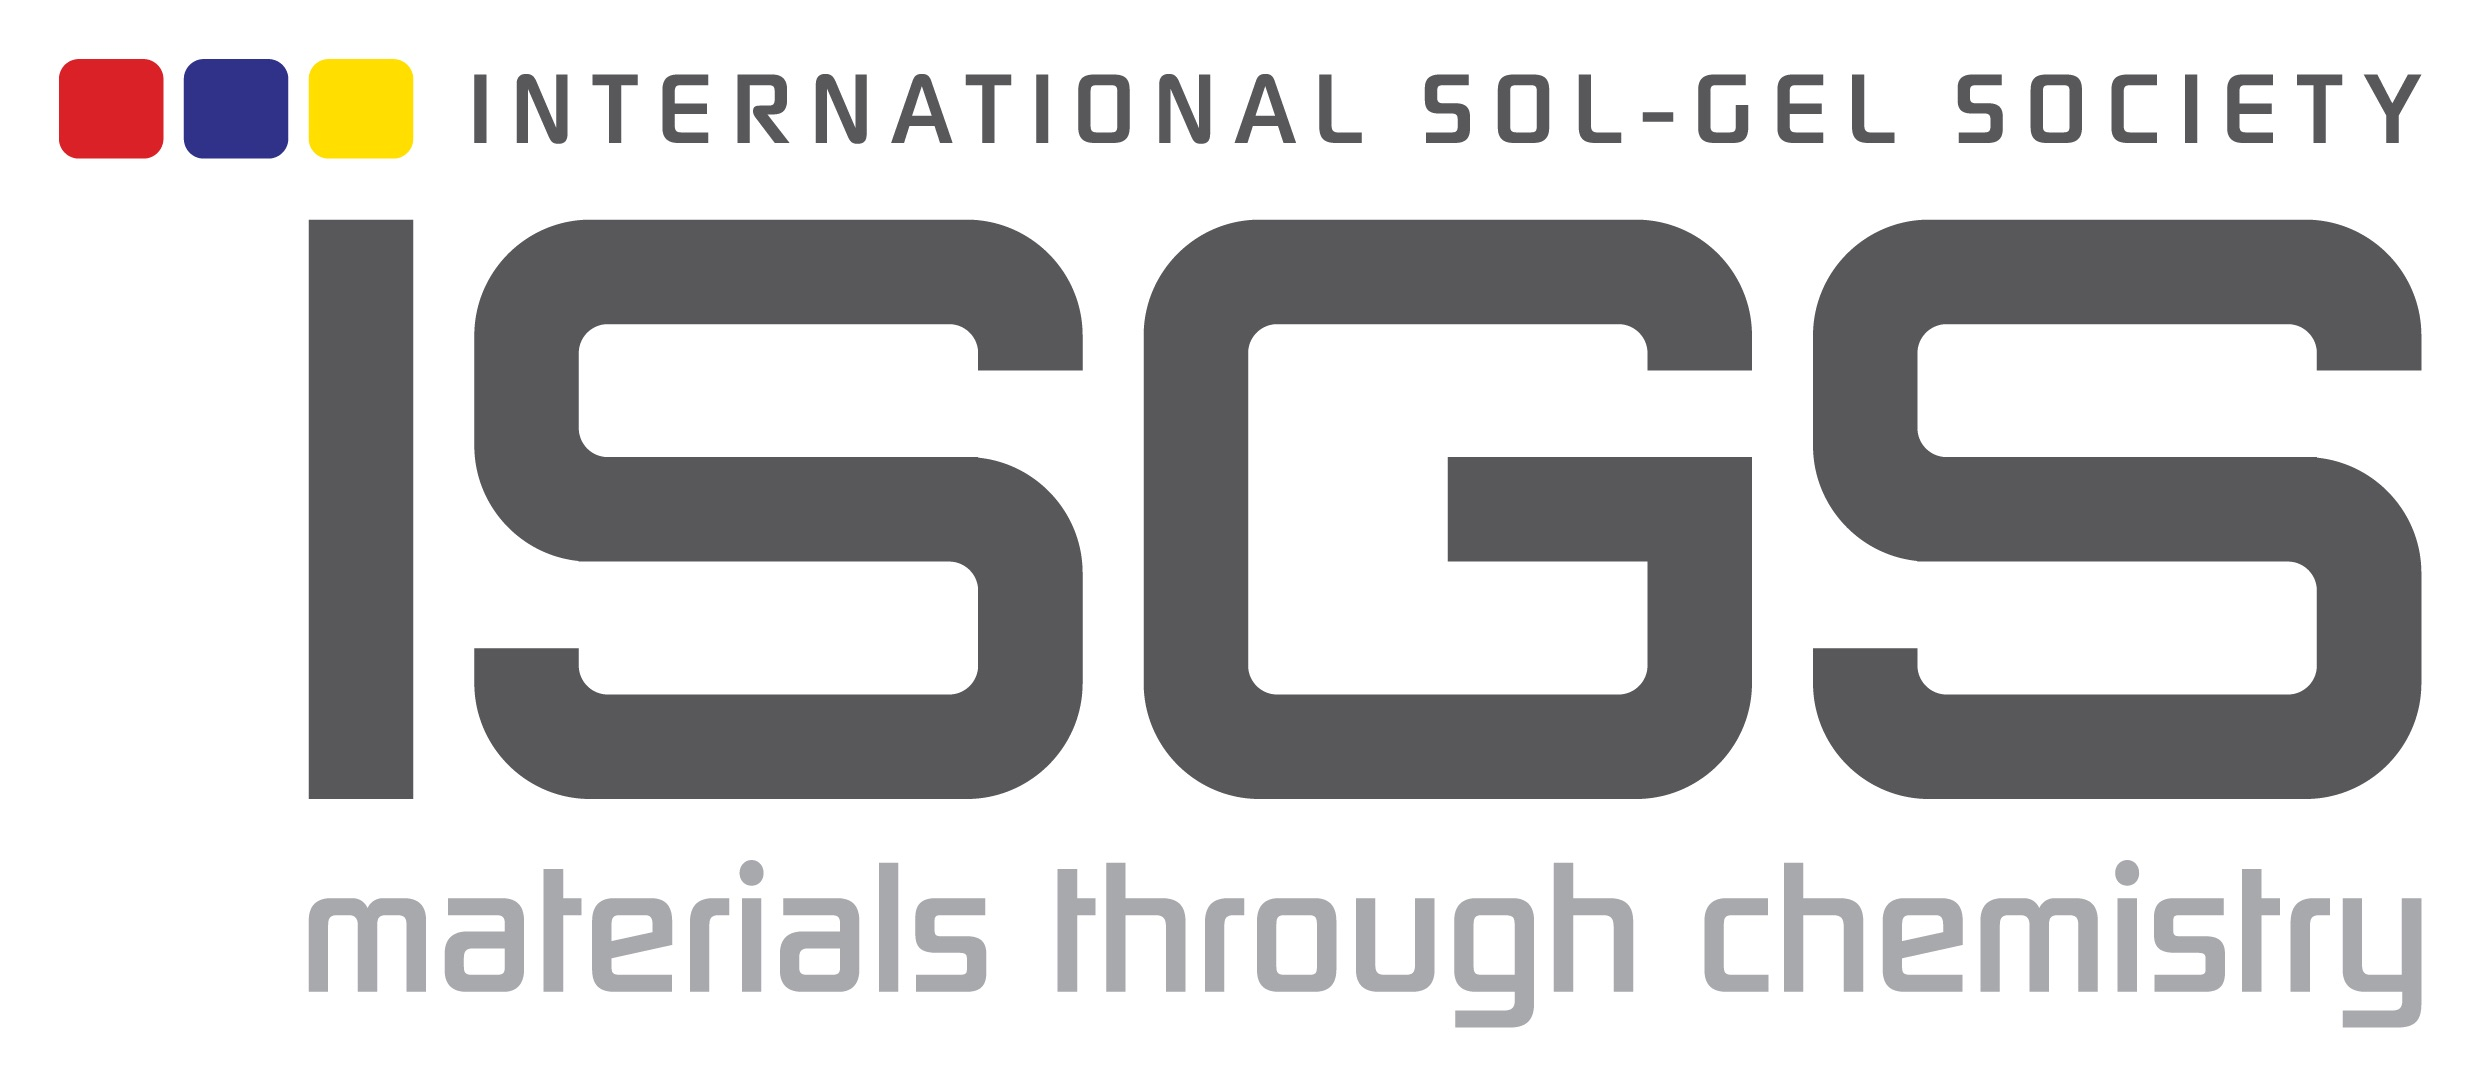 The International Sol Gel Society